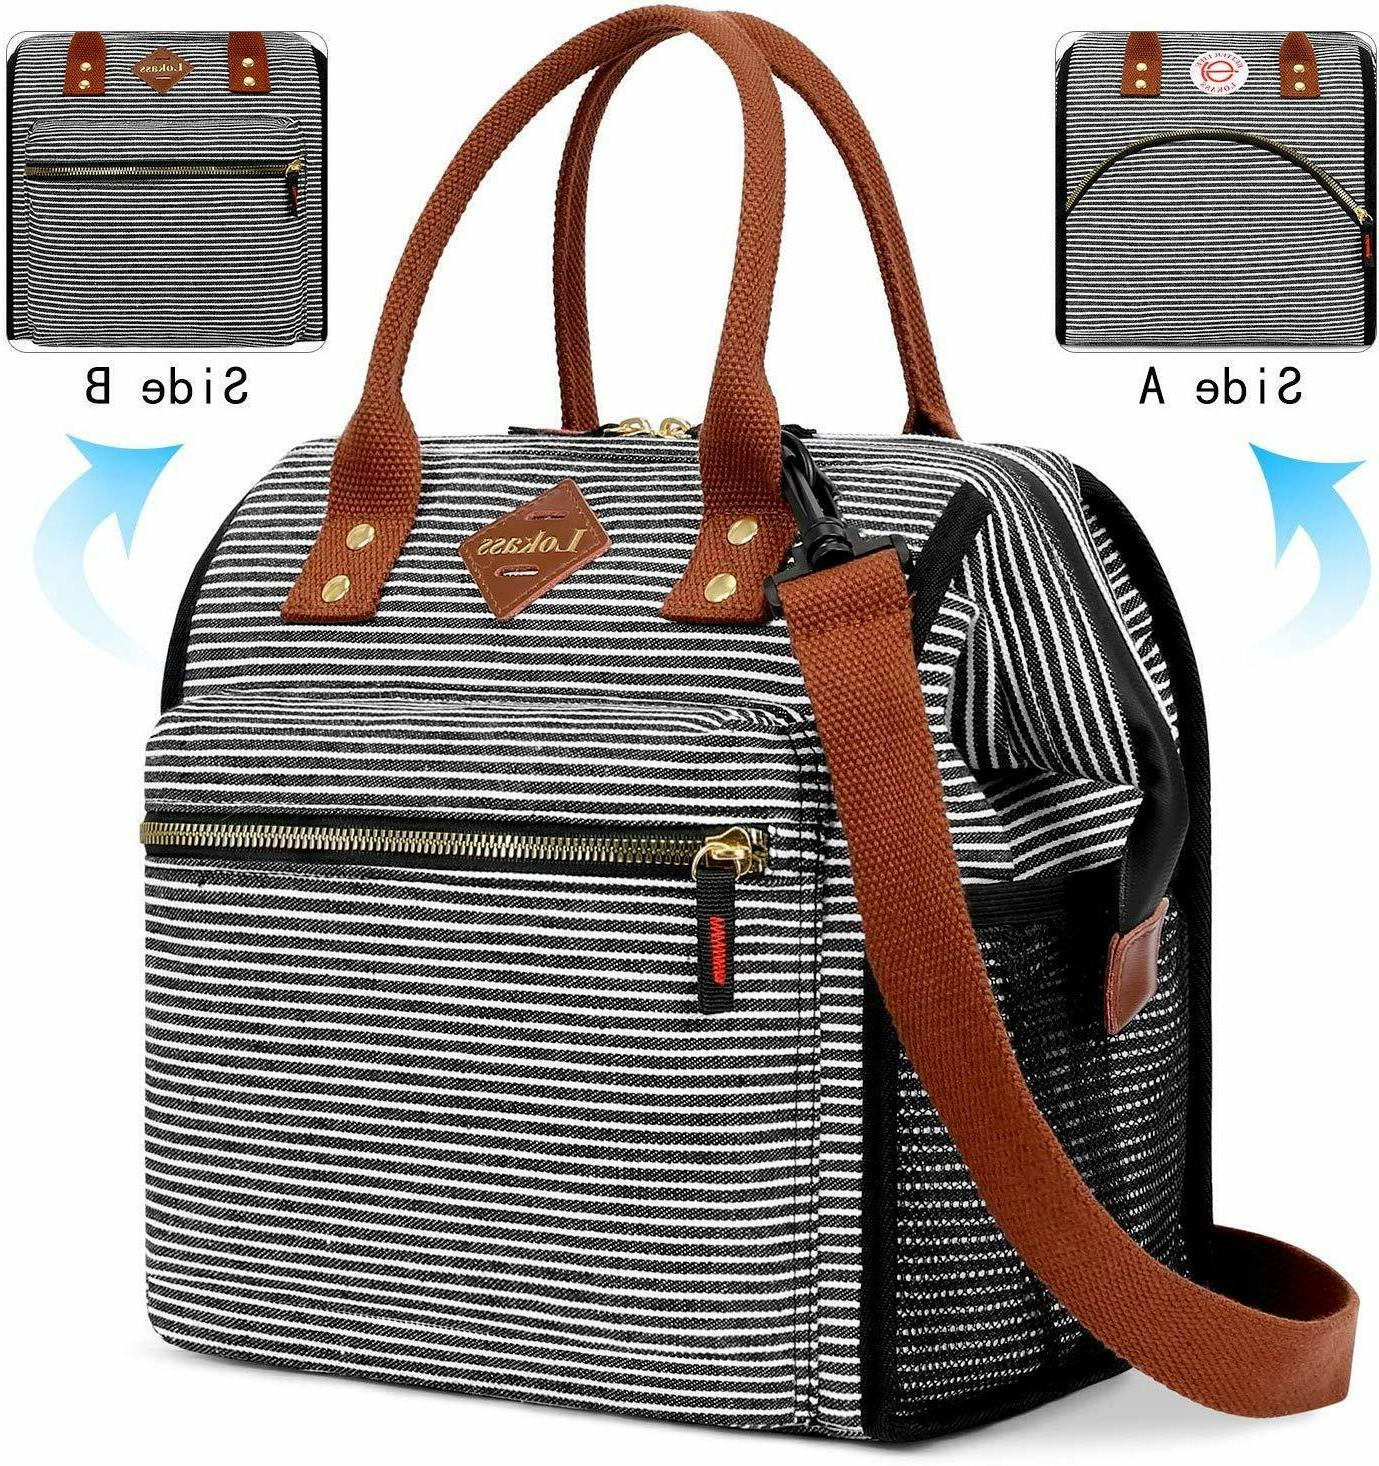 stylish lunch bag thermal cooler tote organizer